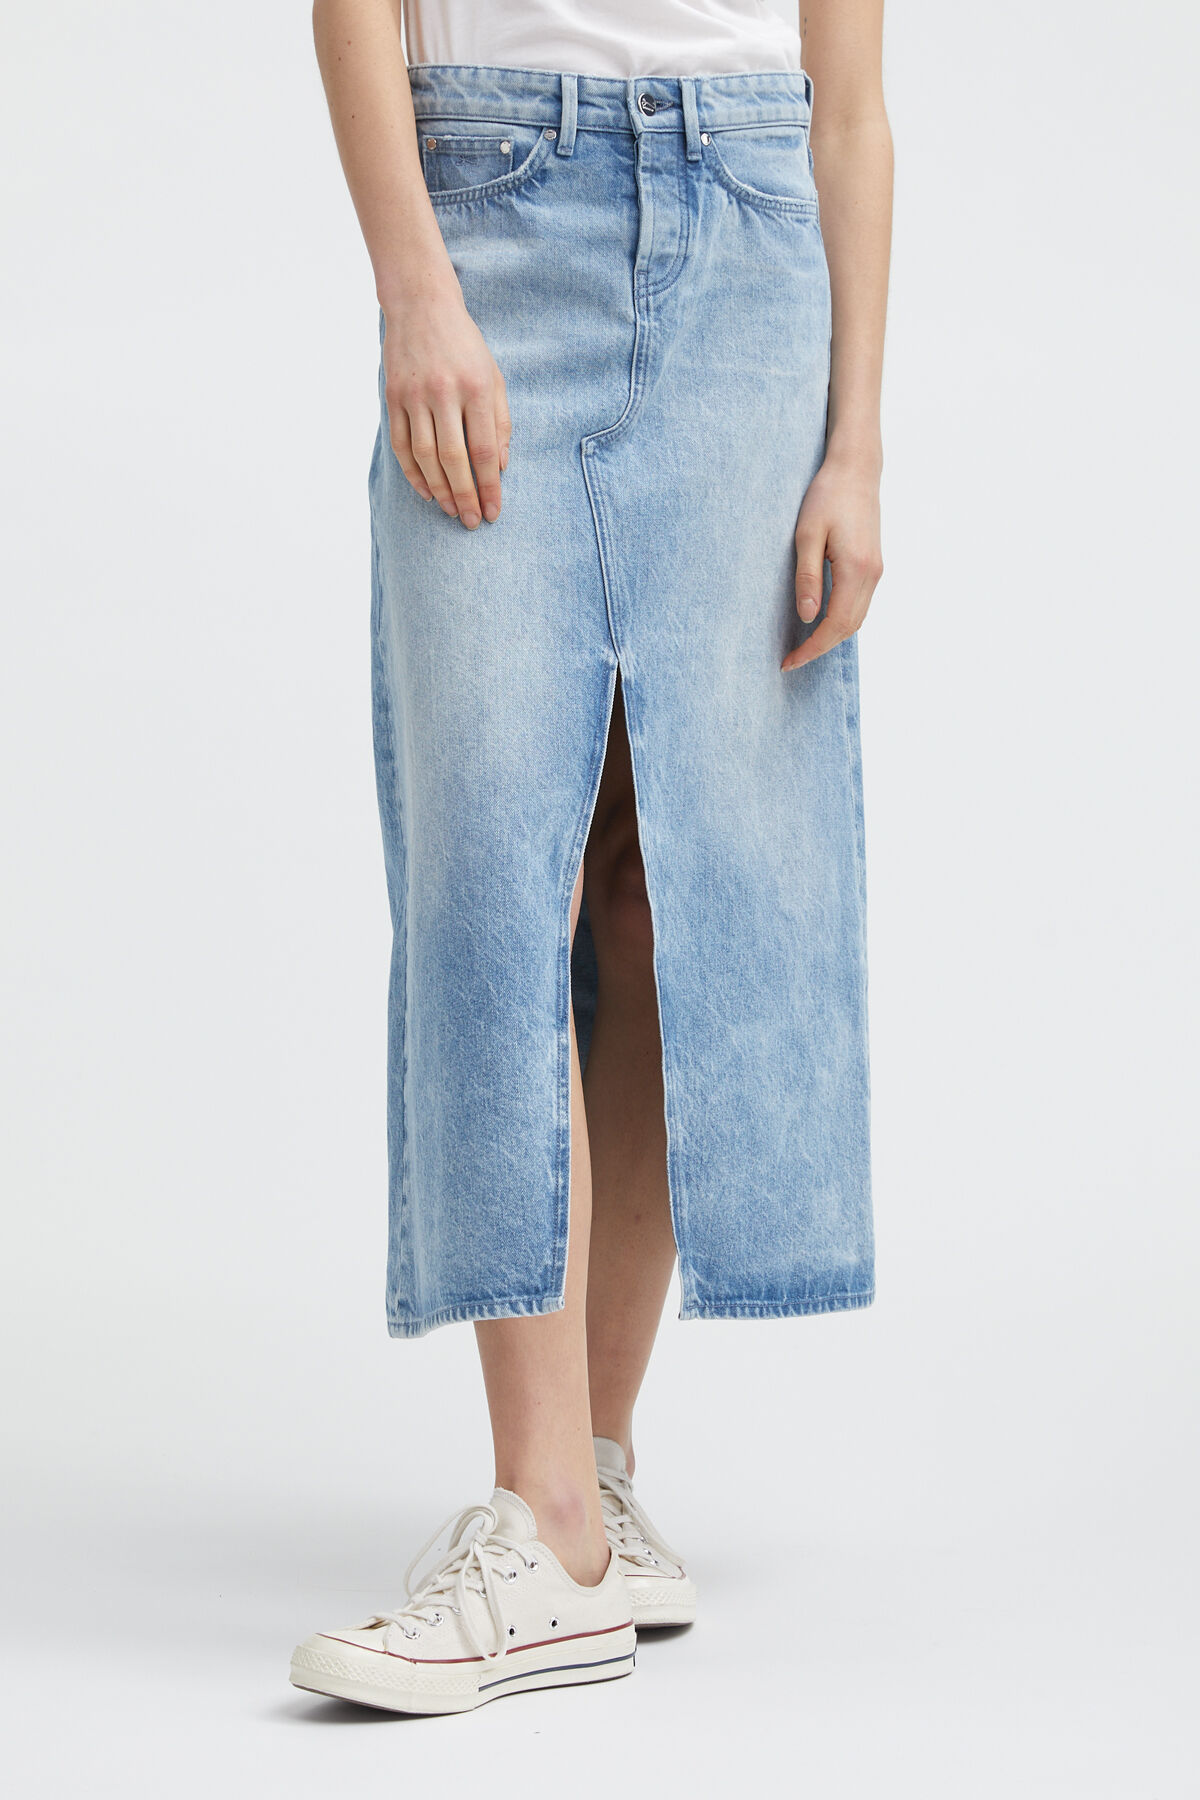 TOWADA Stonewashed Denim Skirt - Midi